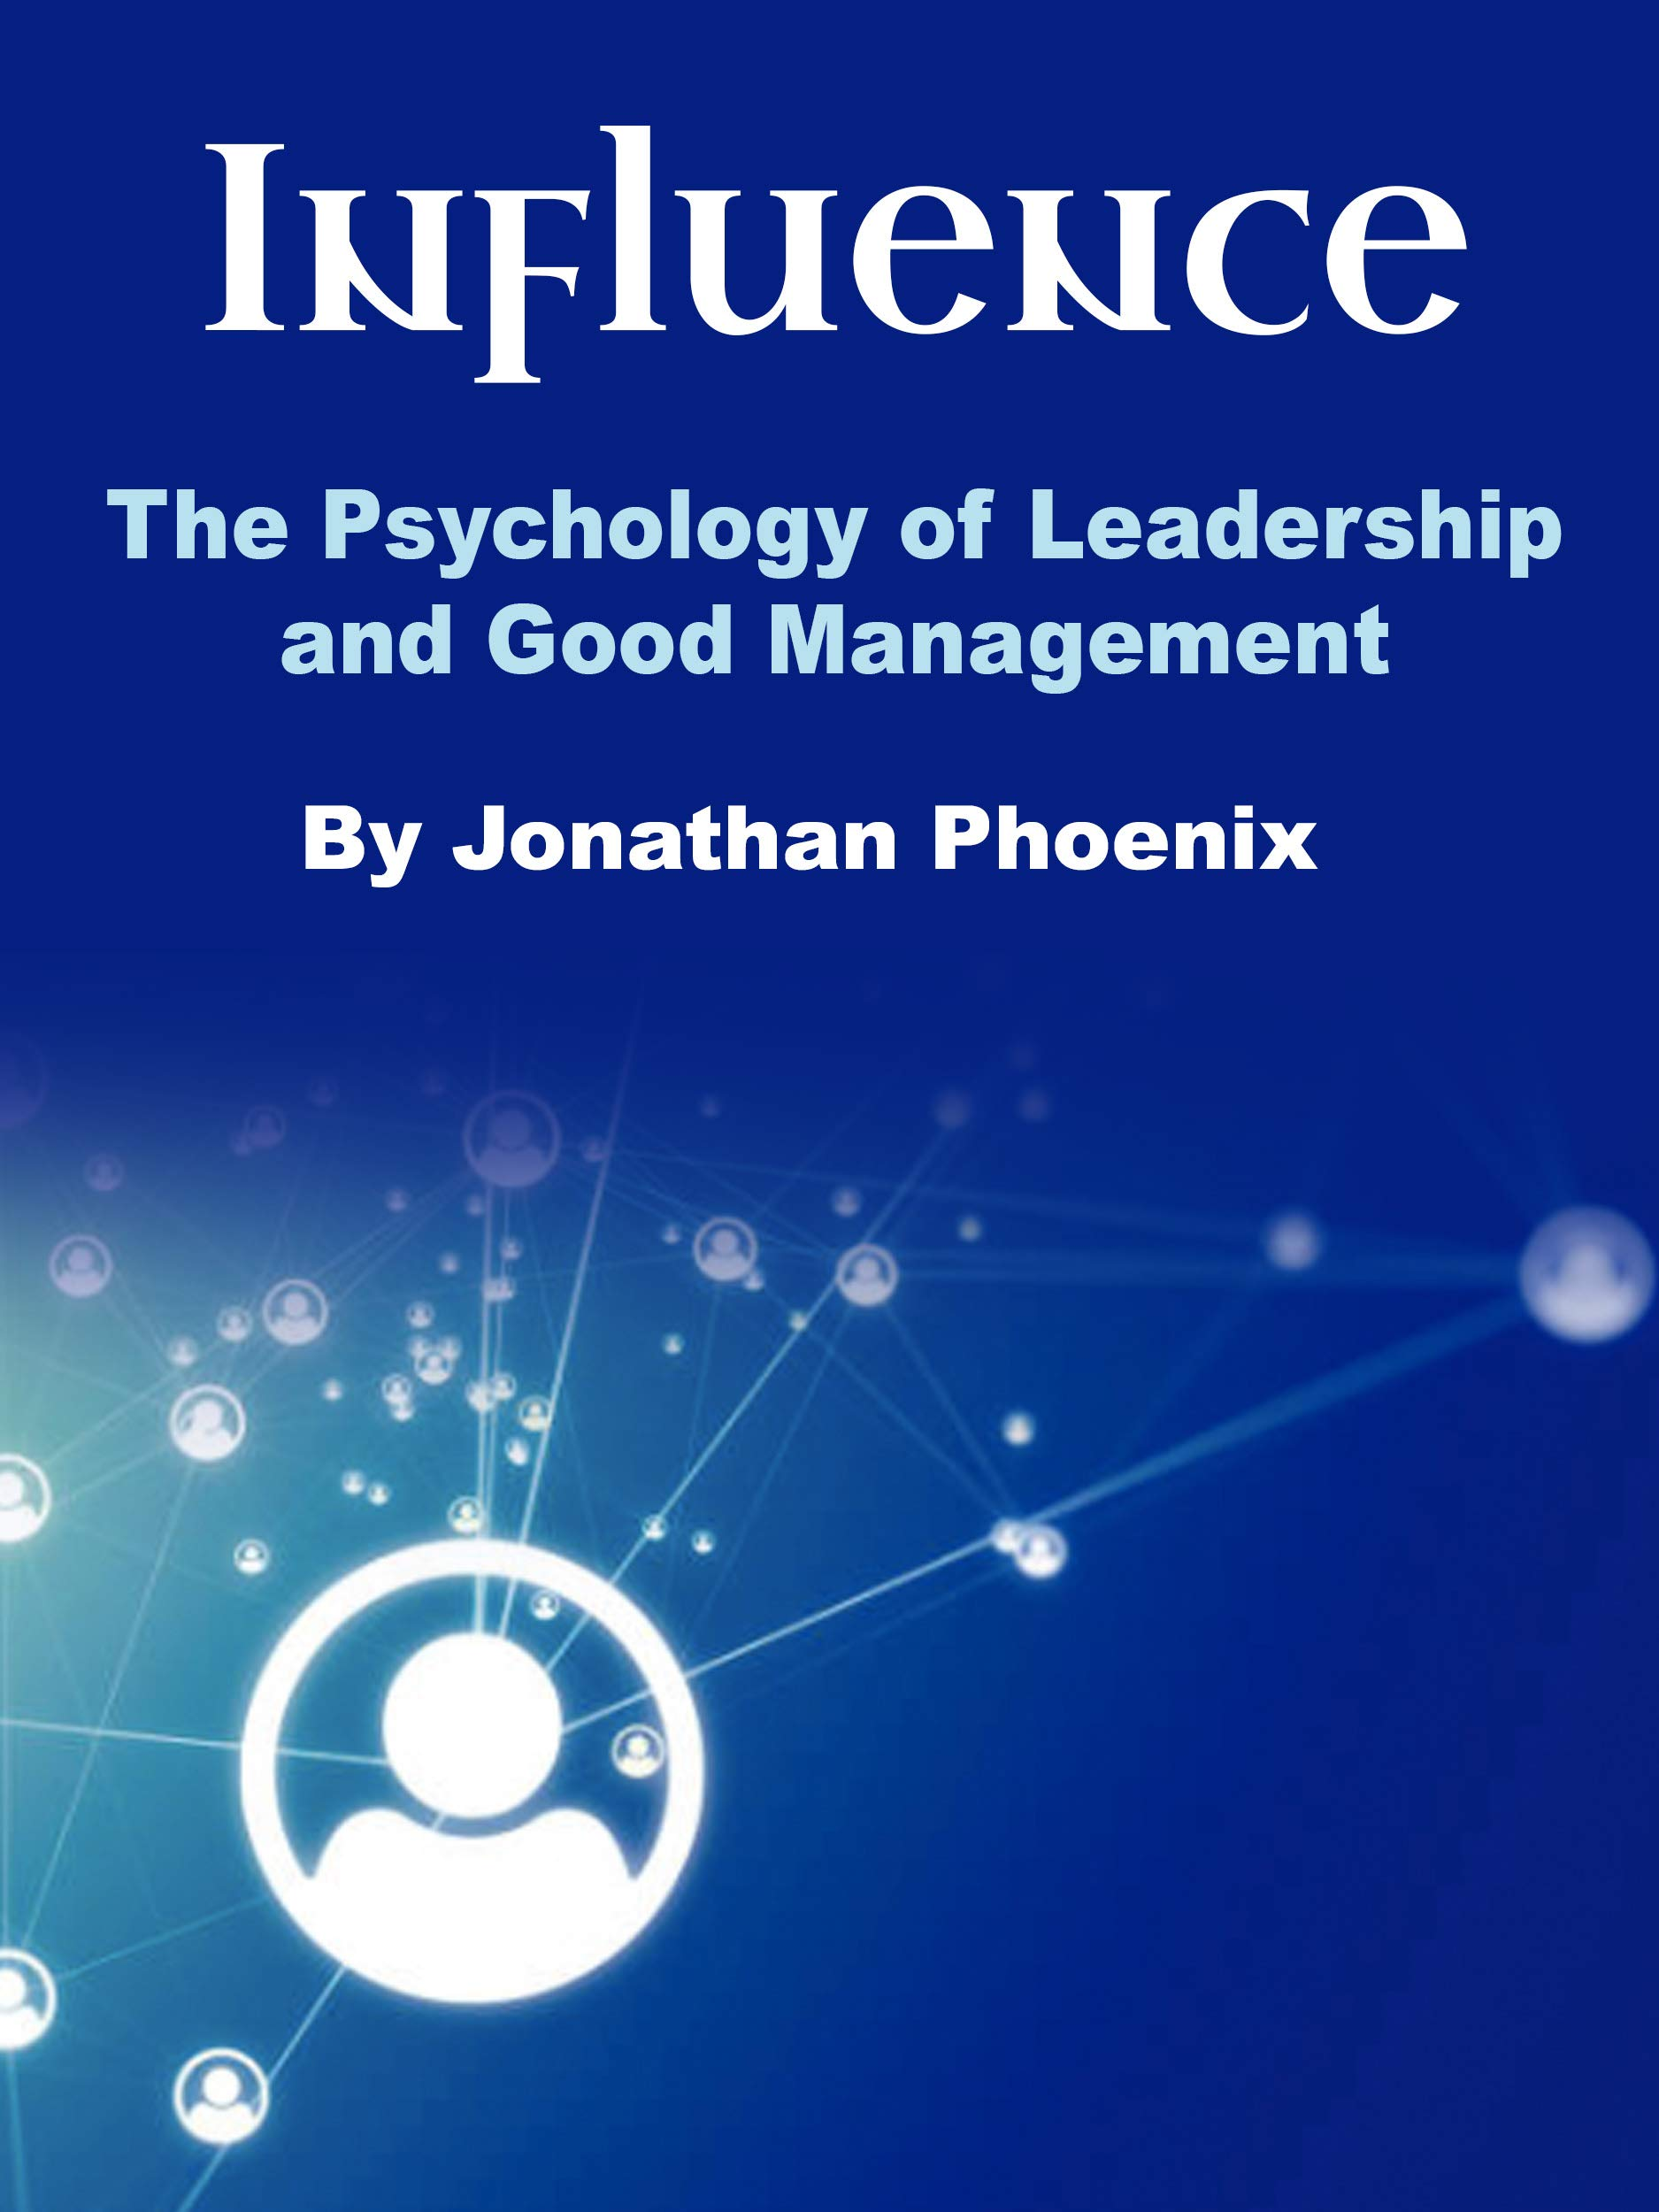 Influence: The Psychology of Leadership and Good Management